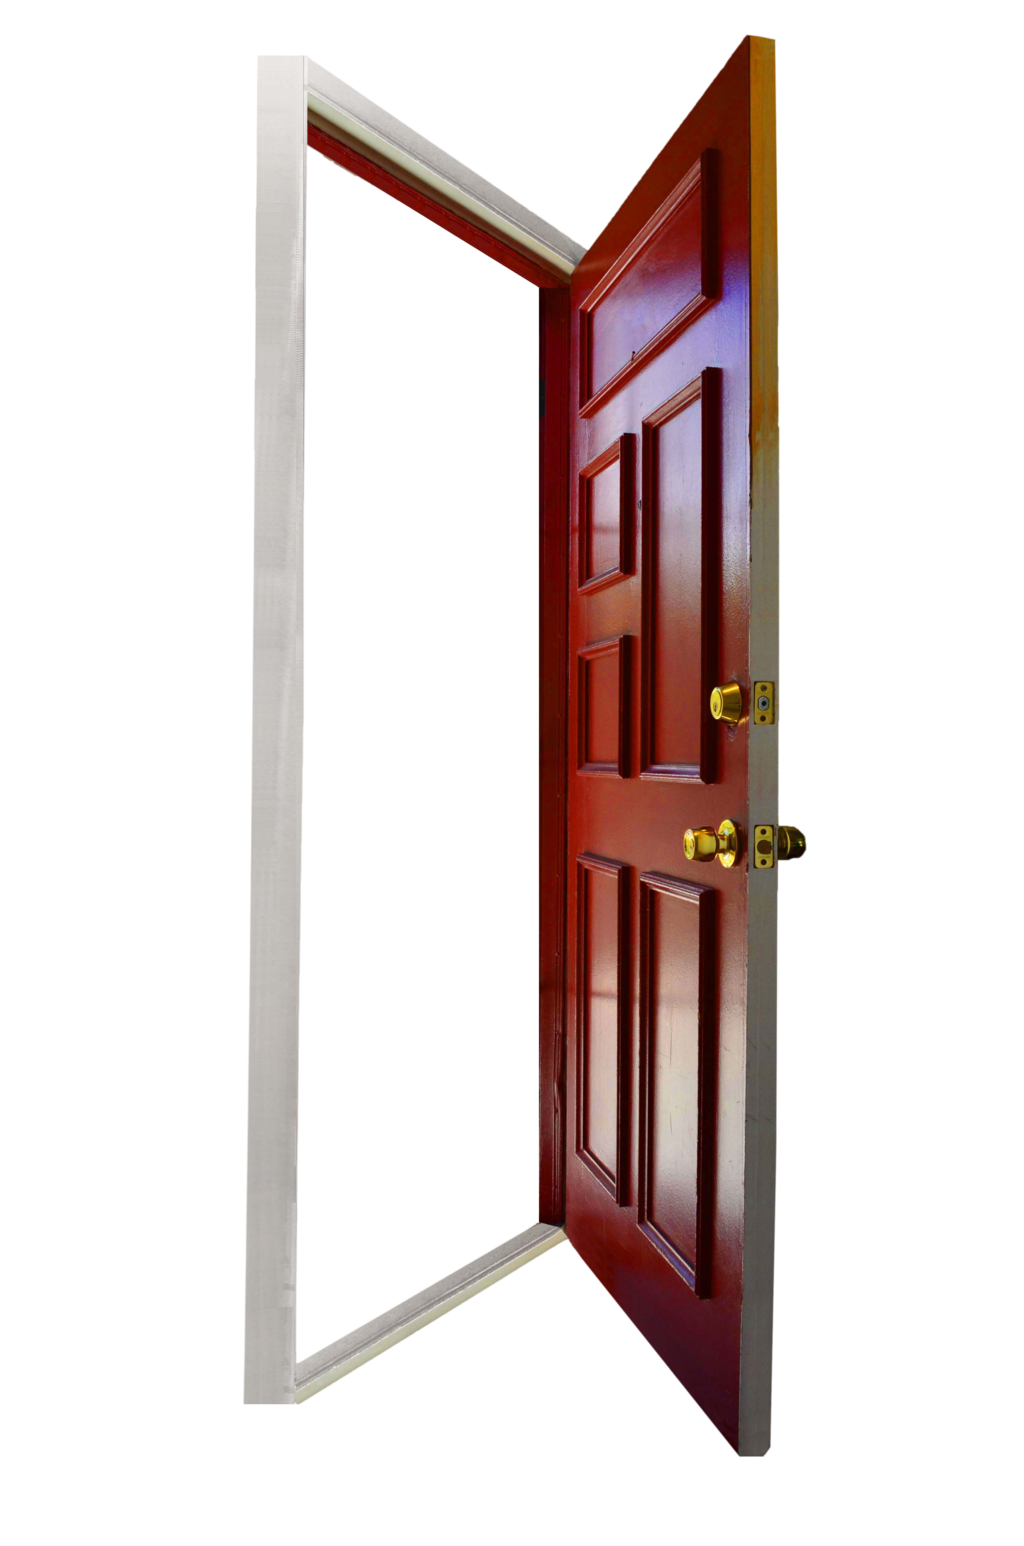 Png images open. Door clipart wood door